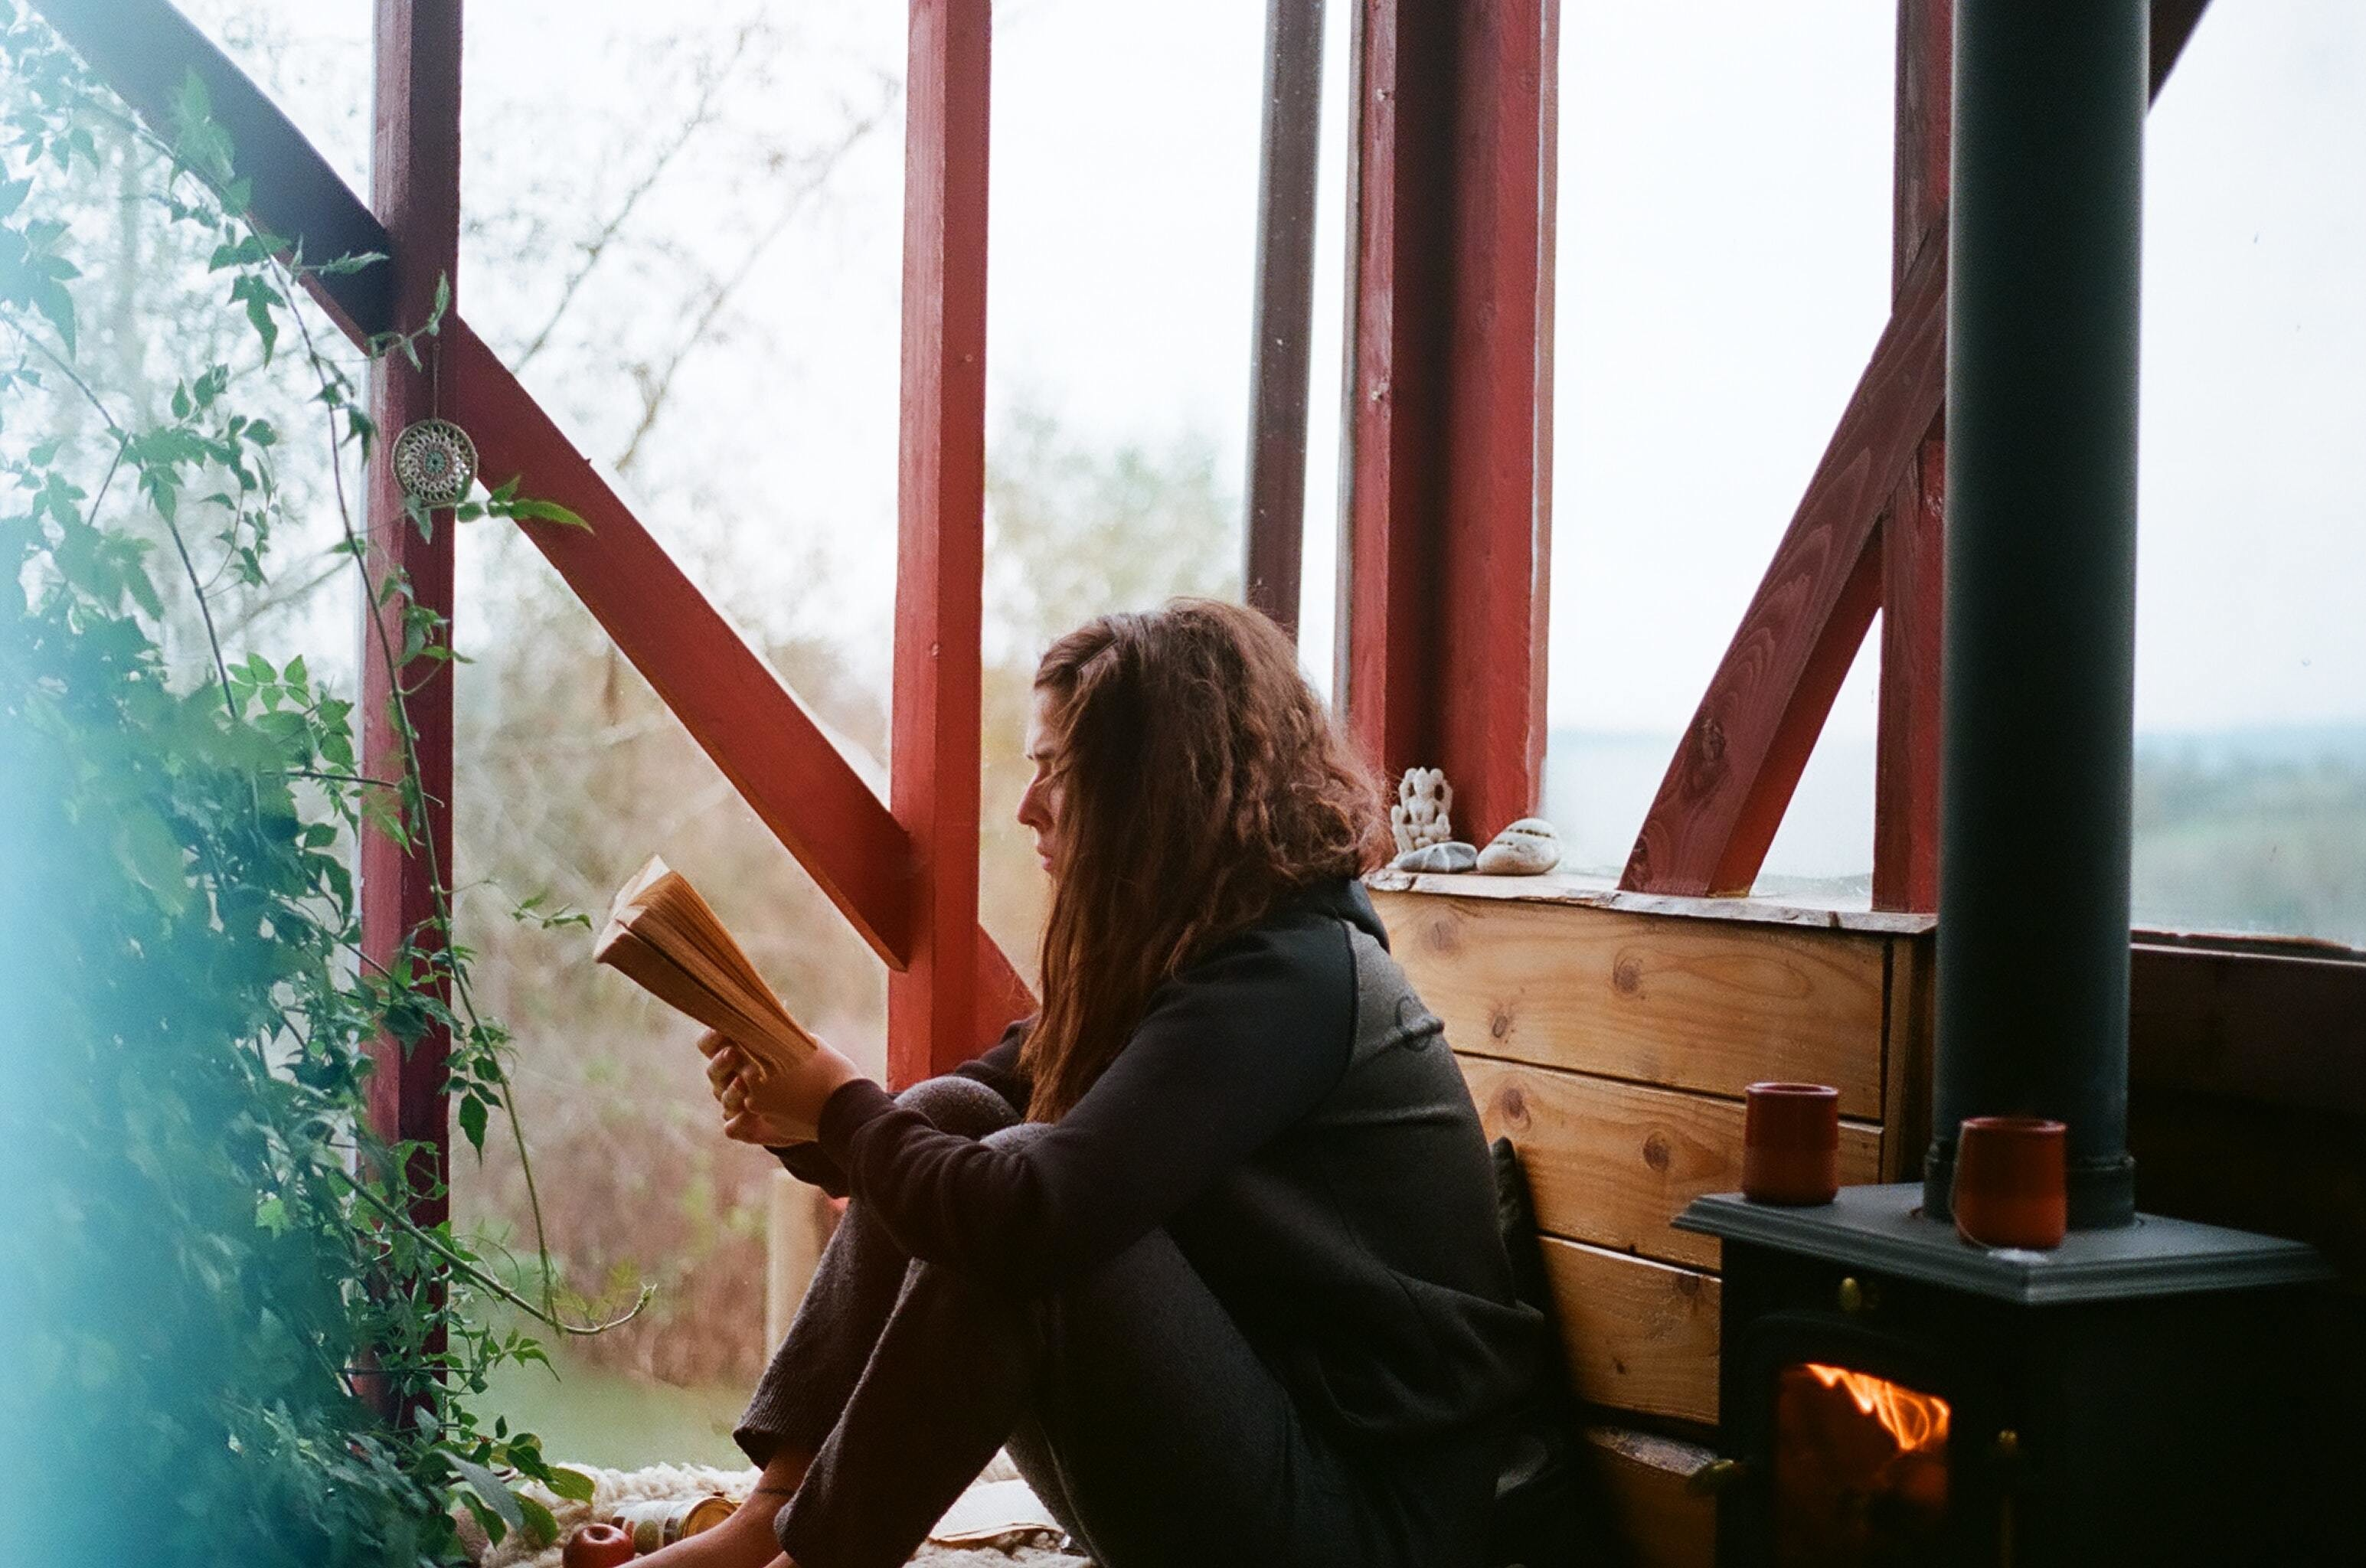 this woman is reading a printed book; printed books are still currently more popular than e-books.